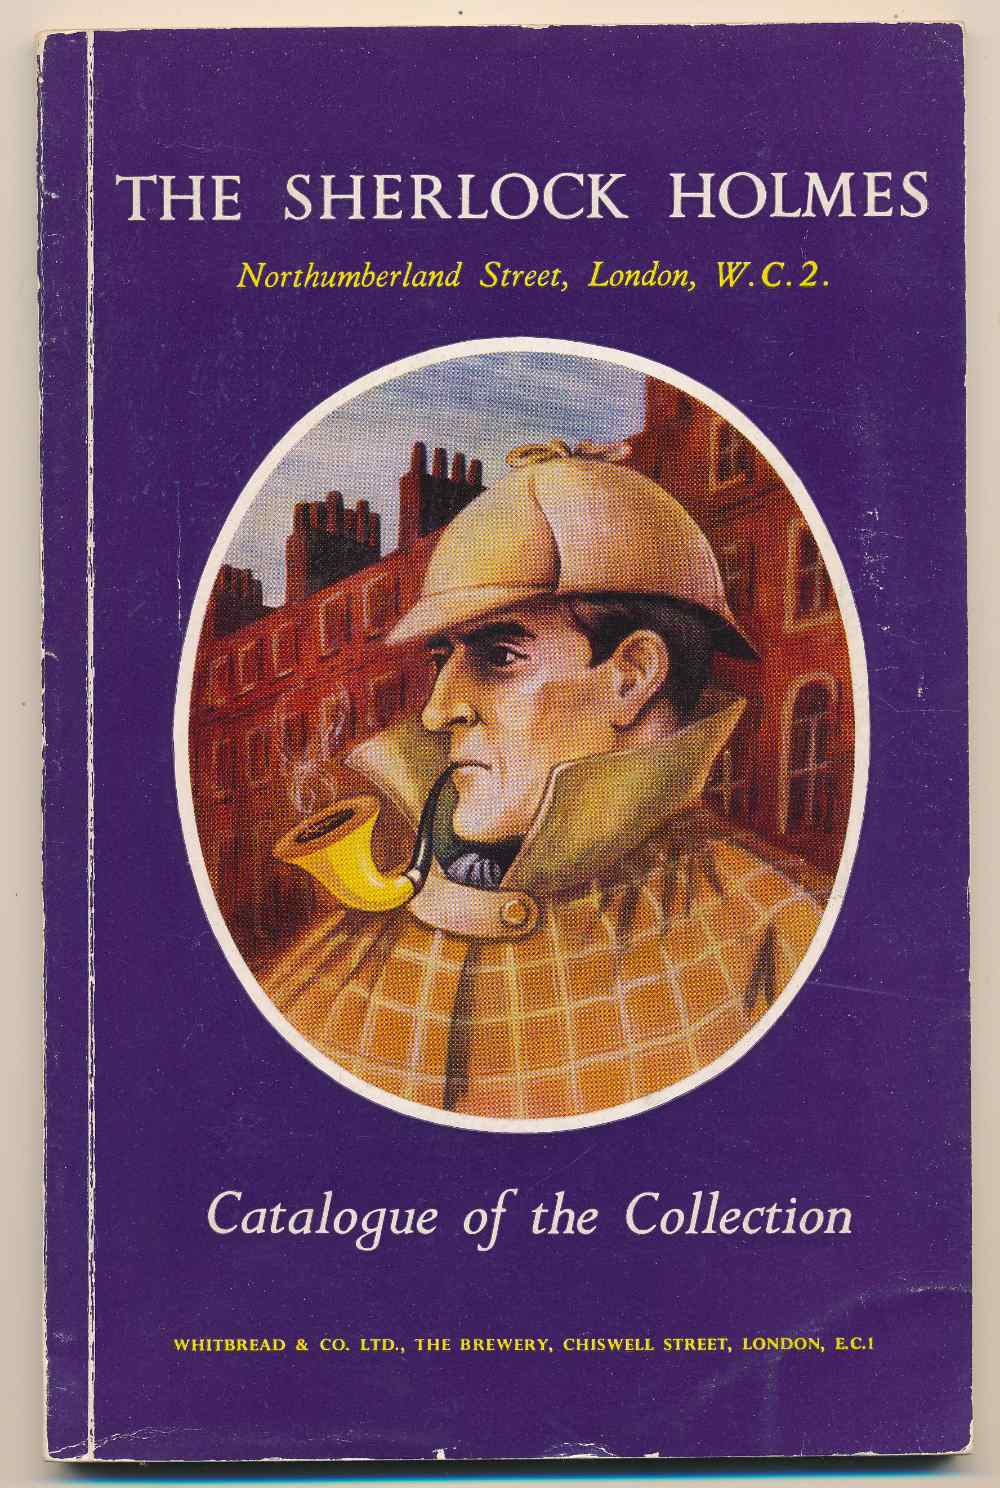 Sherlock Holmes, Northumberland Street, London, WC2 : catalogue of the collection in the bars and the grill room and in the reconstruction of part of the living room at 221B Baker Street